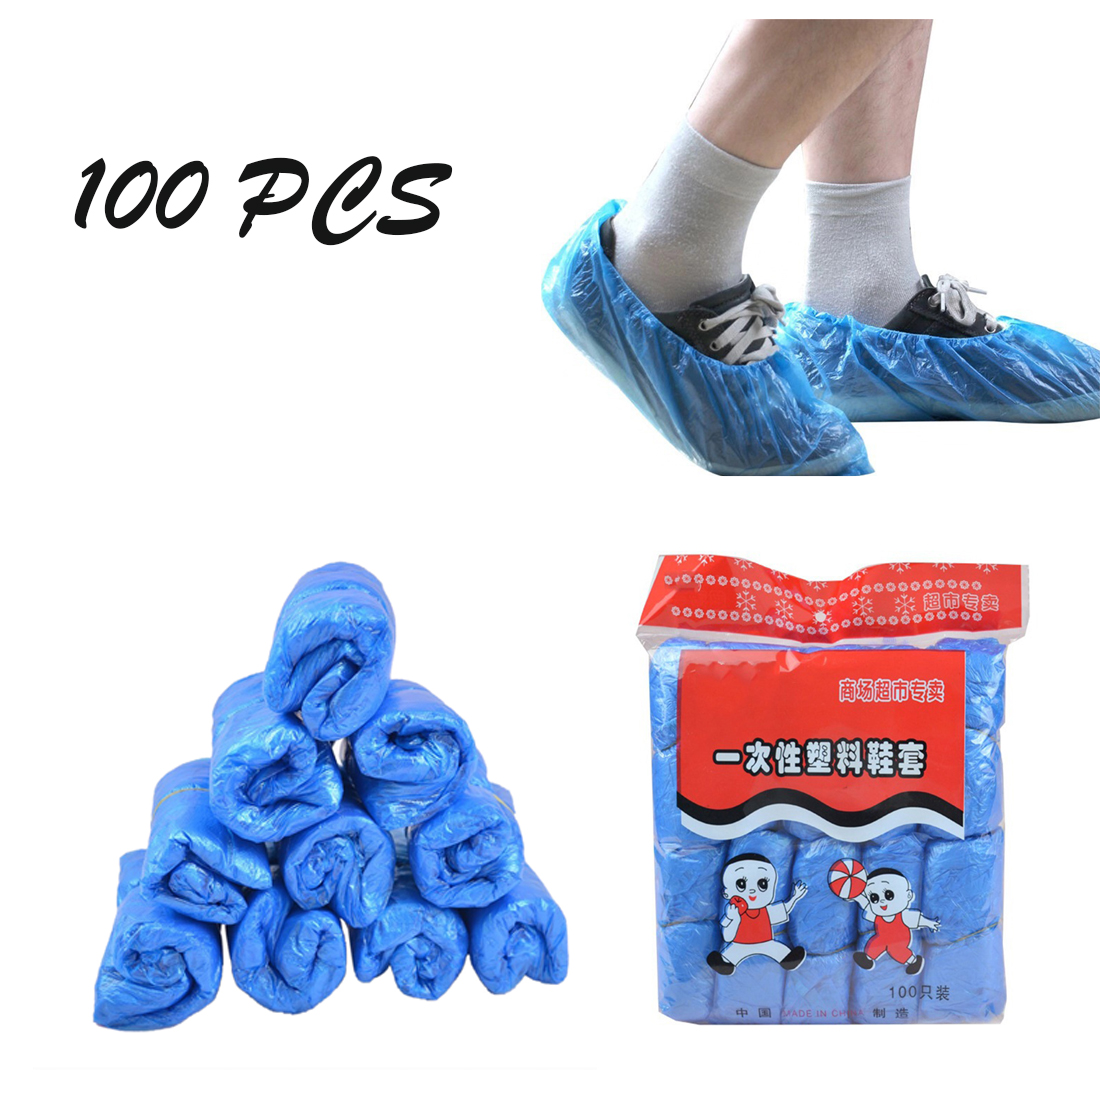 100 Pairs Disposable Boot & Shoe Covers Durable Non-Slip Water Resistant NEW 2020